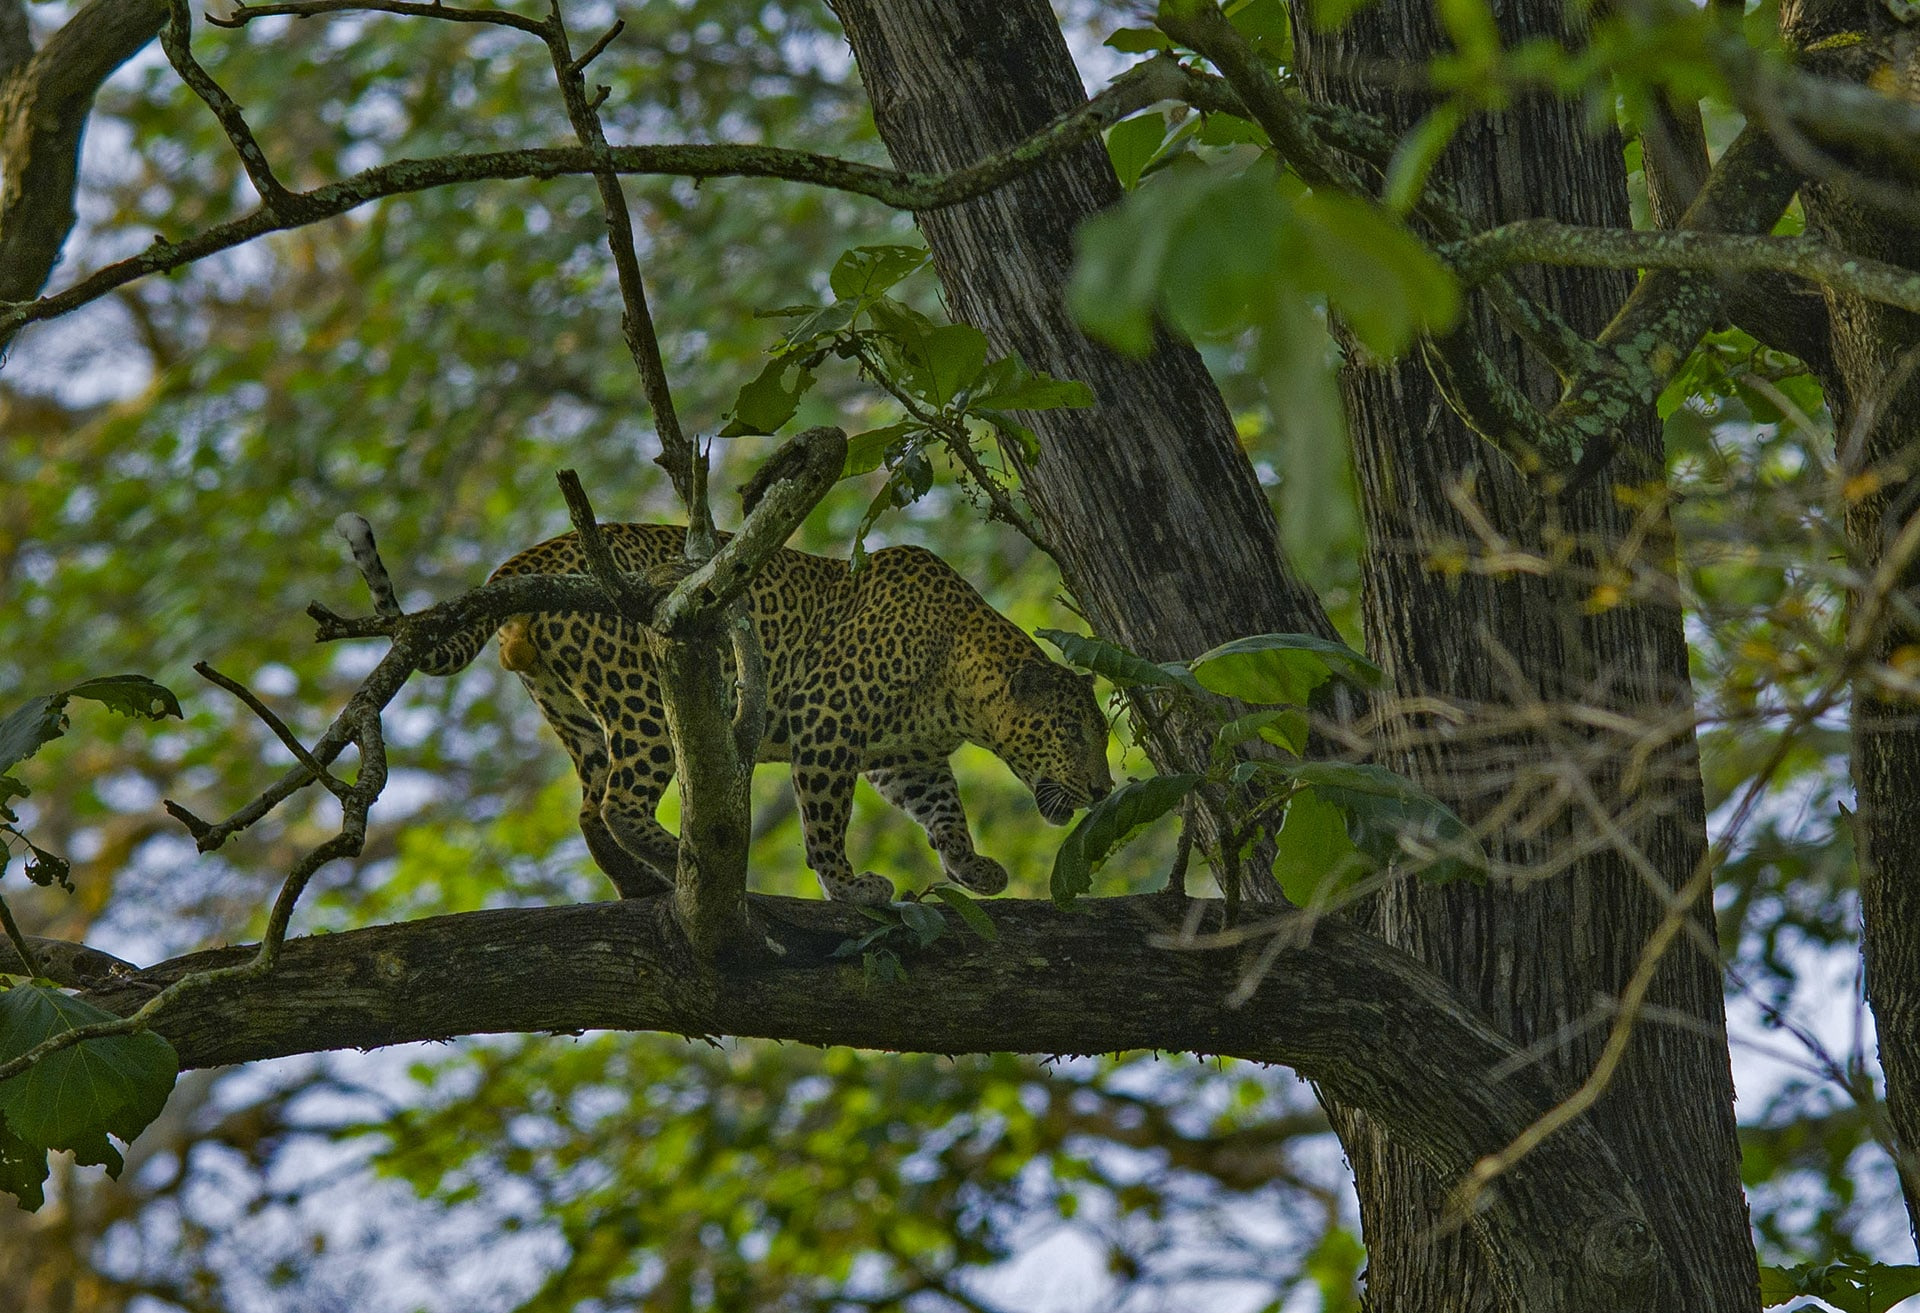 There are over a 100 leopards that roam the forested tracts of Kabini. The cats are incredibly shy and stealthy, and spotting them is very hard. 